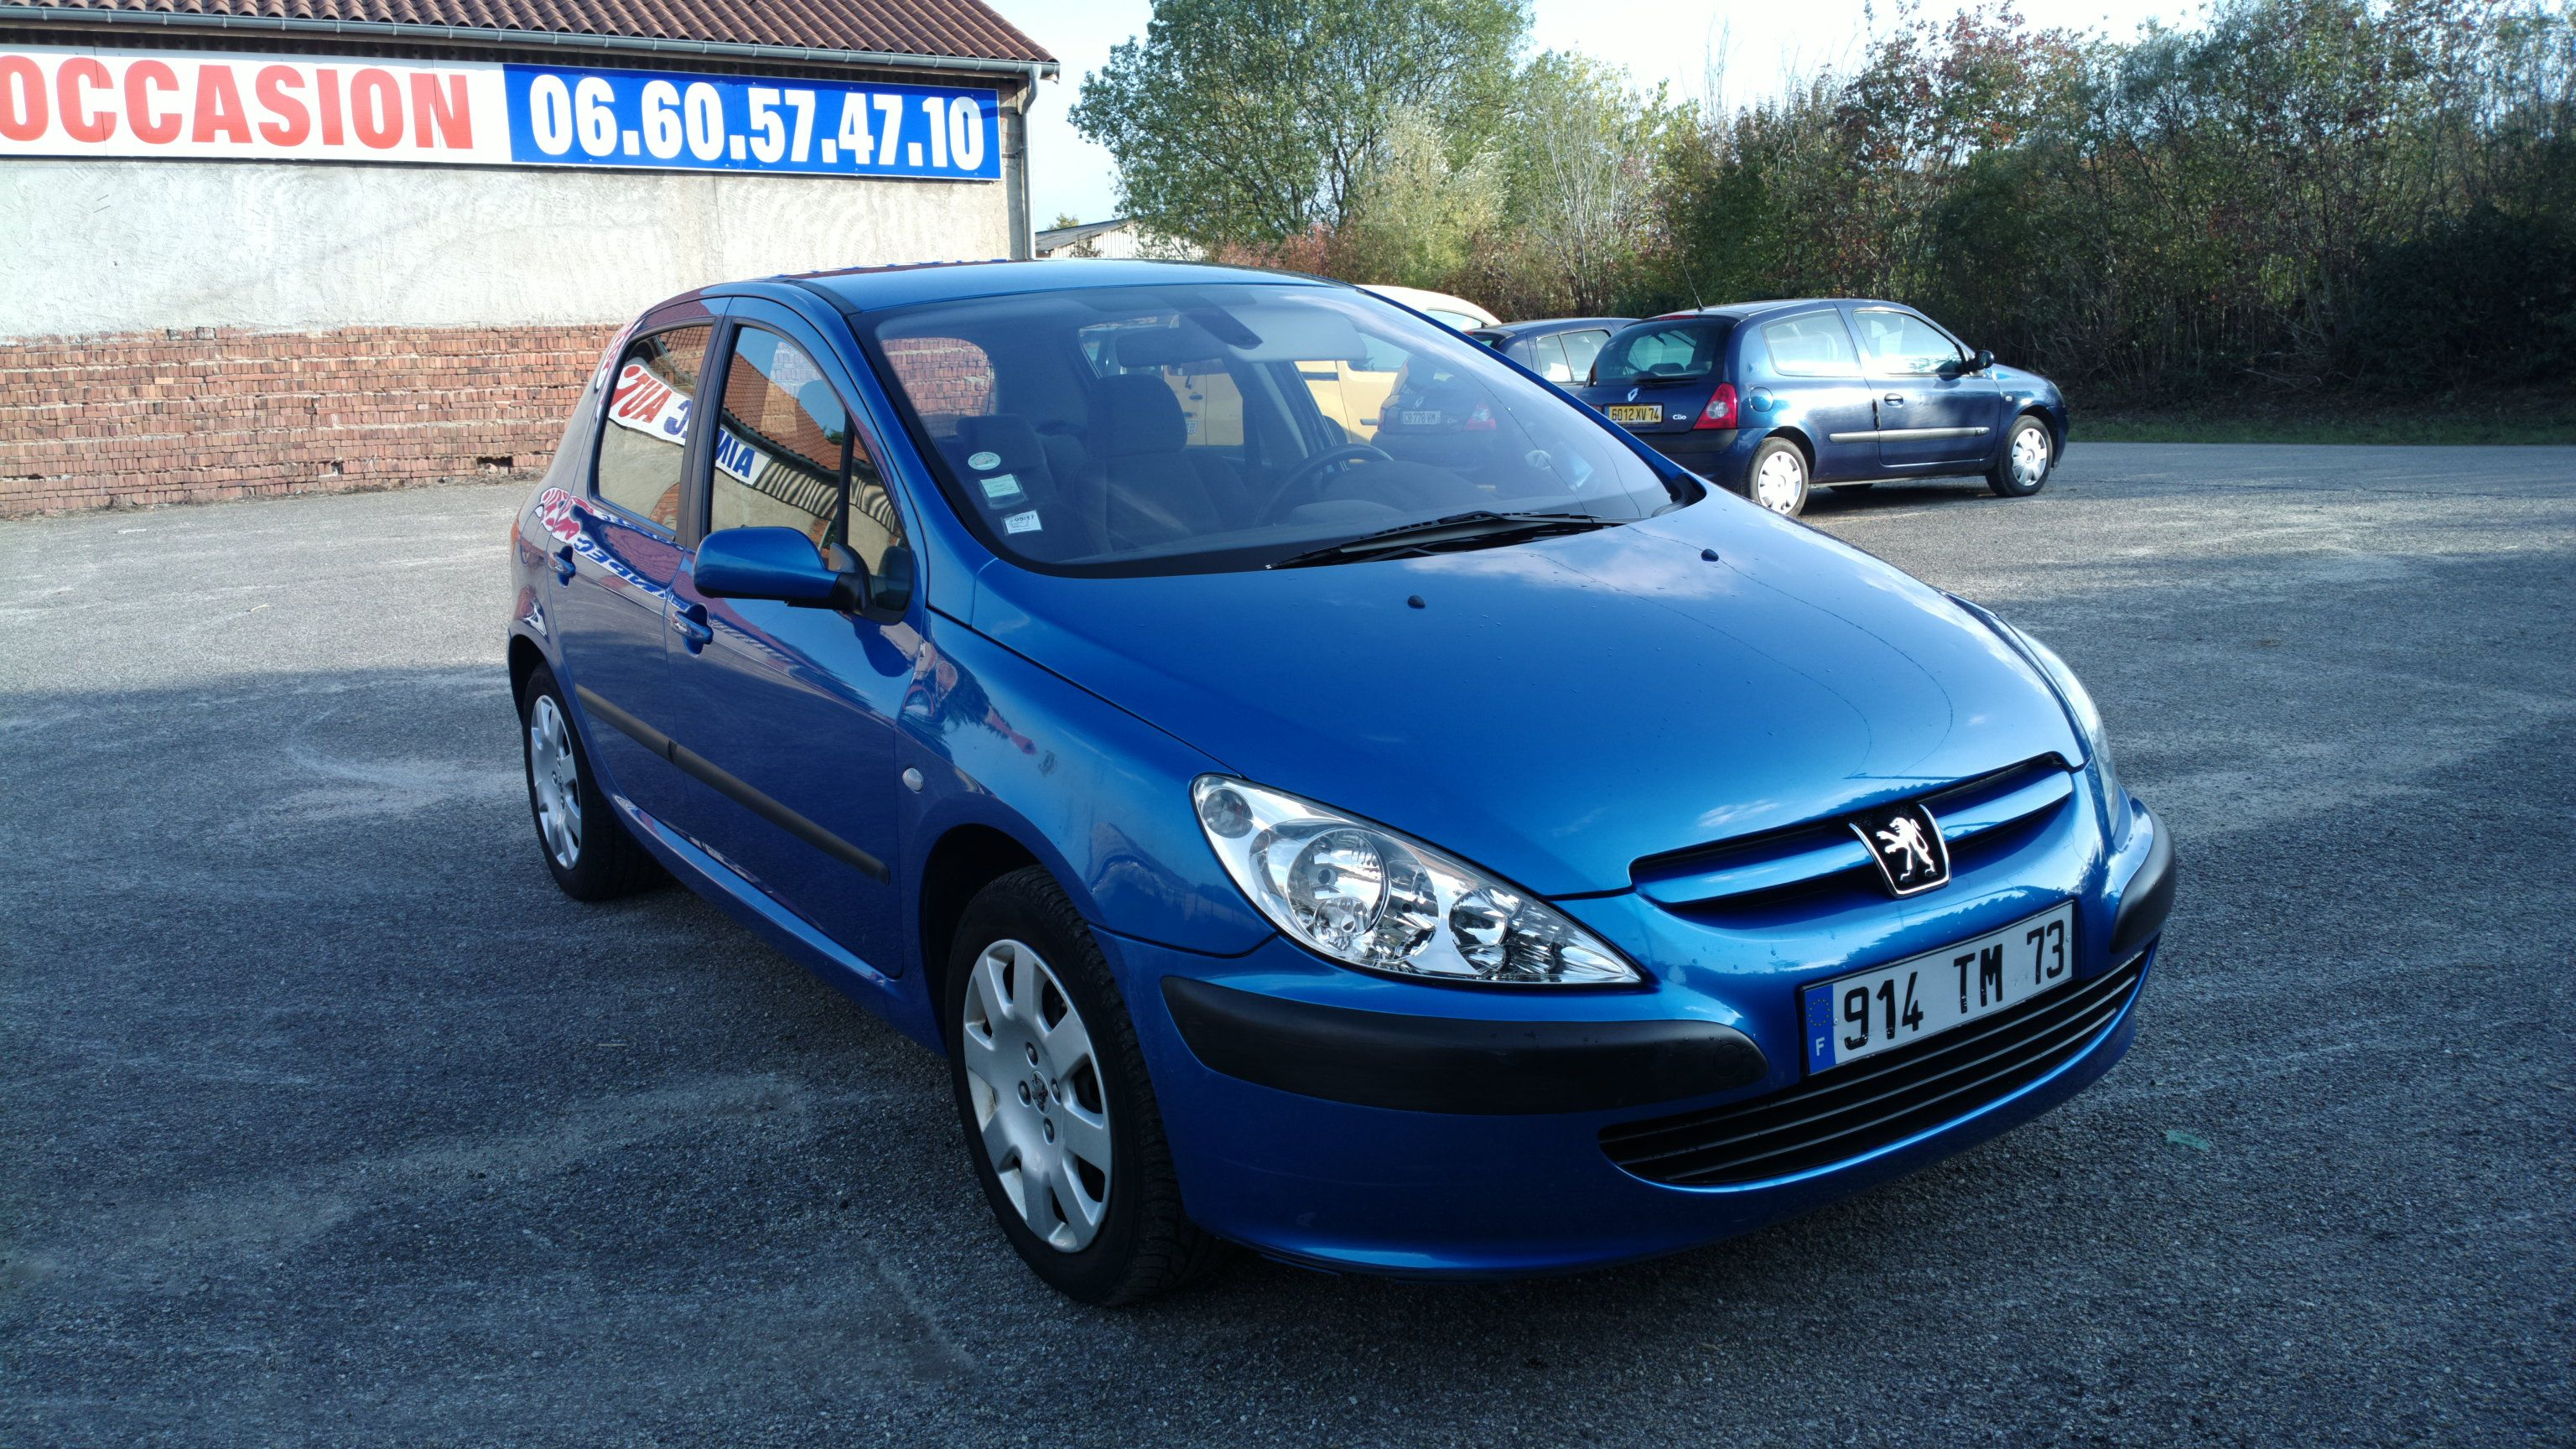 peugeot 307 2 0 hdi 110 xt premium 42500kms 6 000. Black Bedroom Furniture Sets. Home Design Ideas